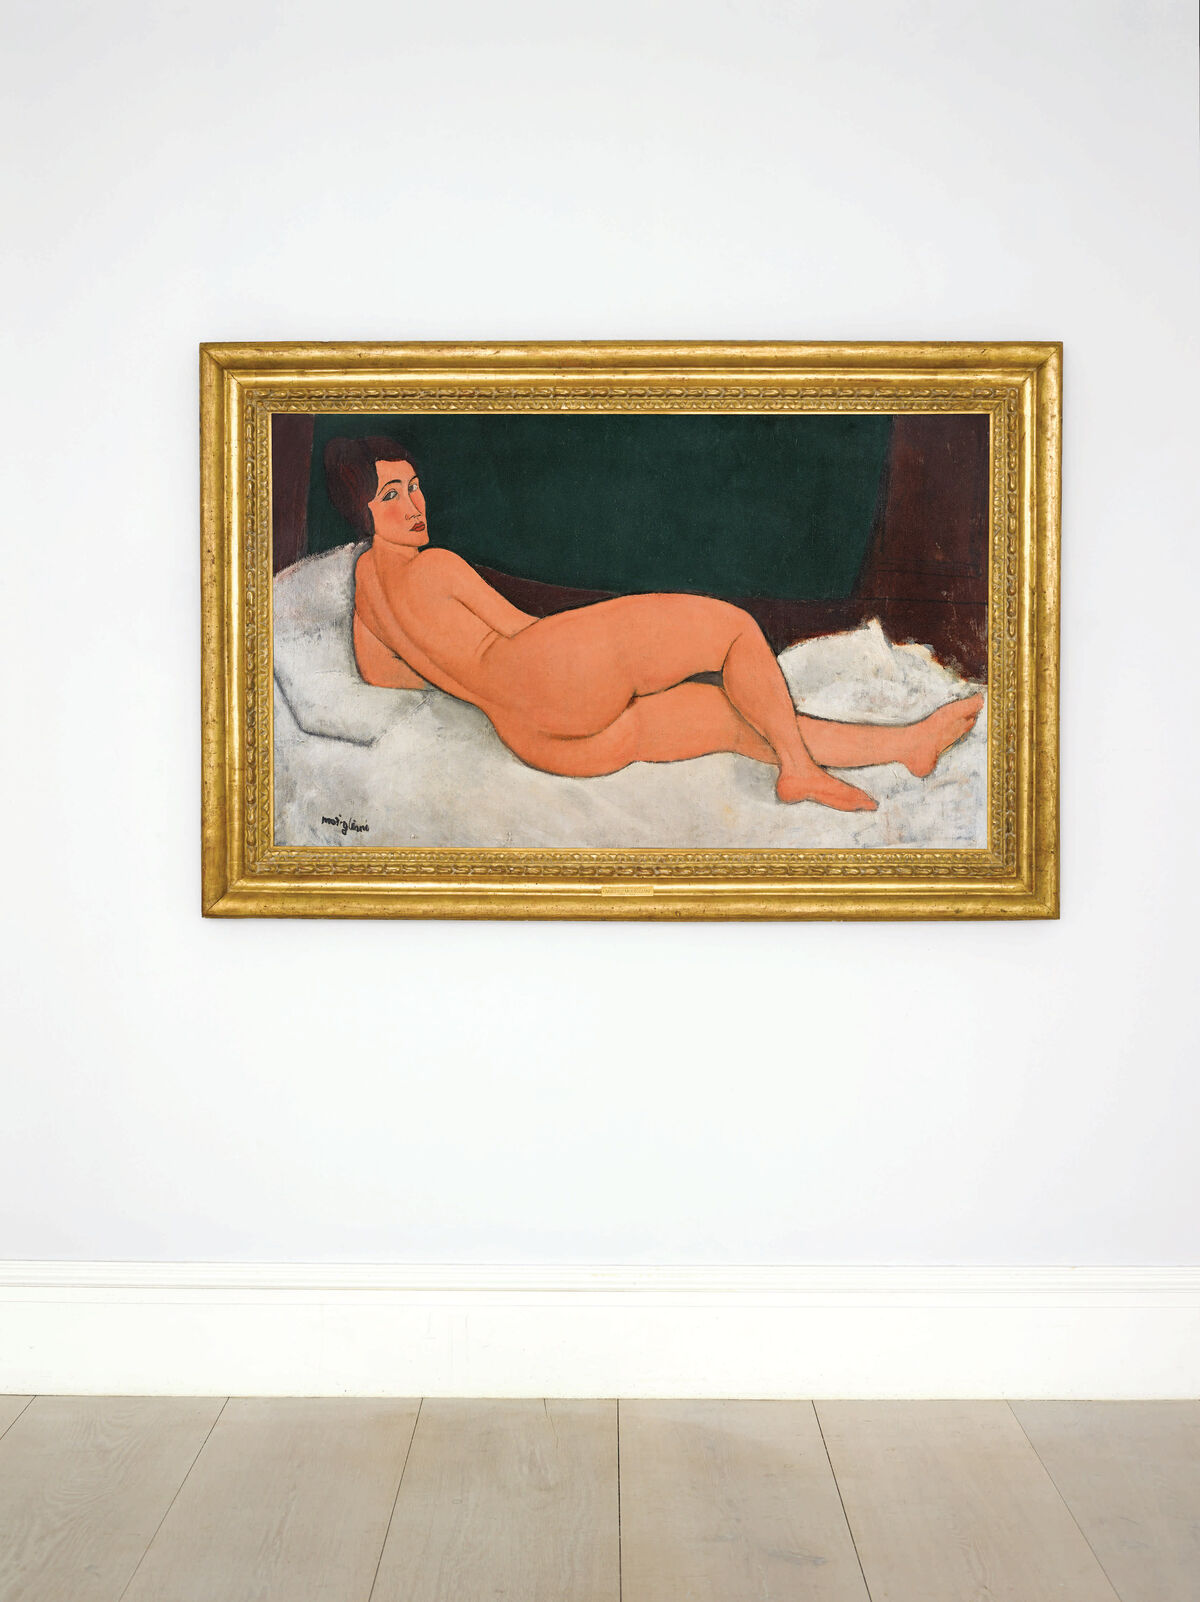 Amedeo Modigliani, Nu couché (sur le côté gauche), 1917.  Photo courtesy Sotheby's.